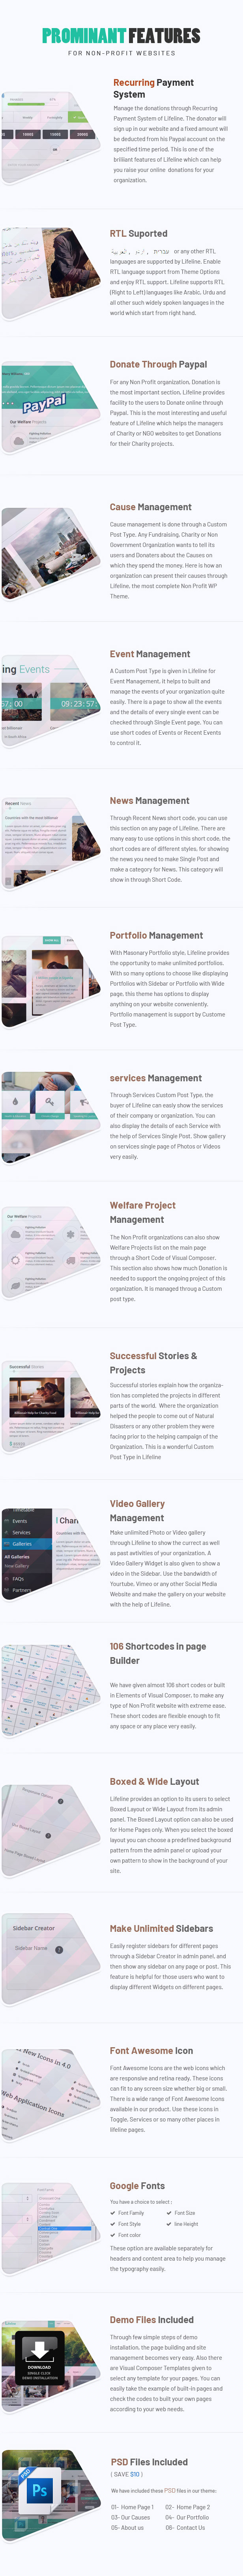 Lifeline - NGO, Fund Raising and Charity WordPress Theme - 5